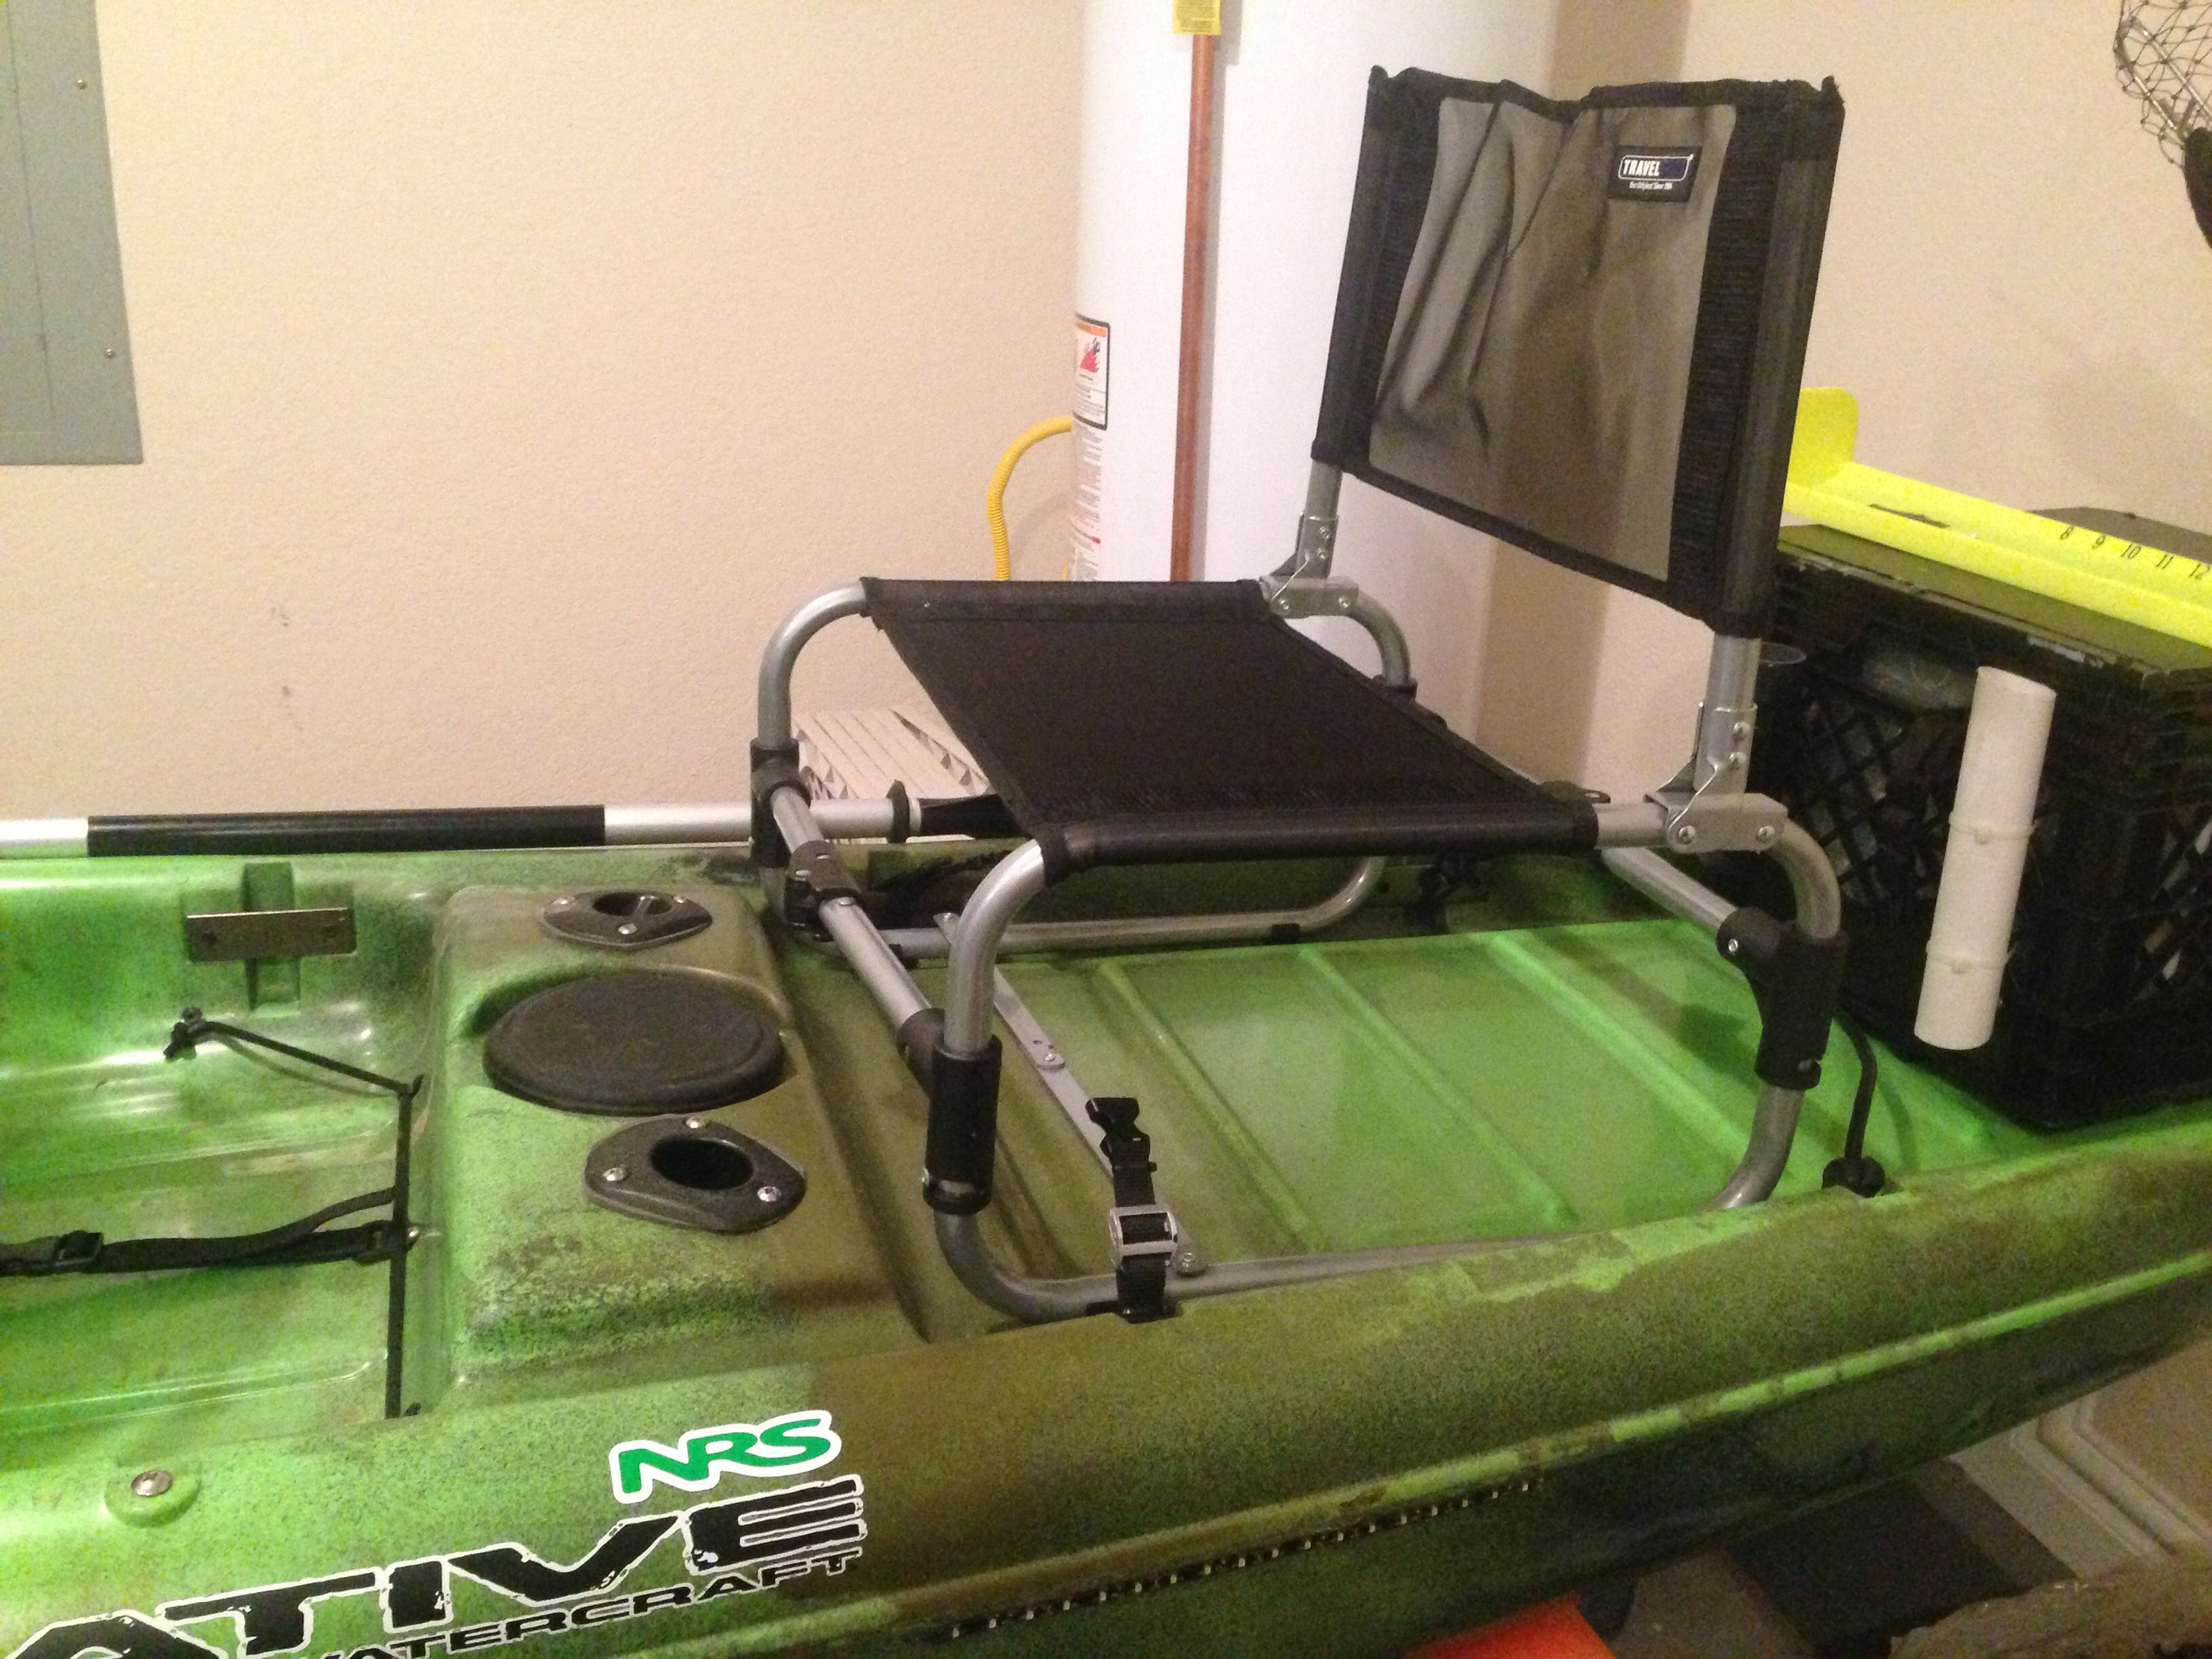 larry chair kayak high toy for my son to join me on native watercraft mariner propel fishing